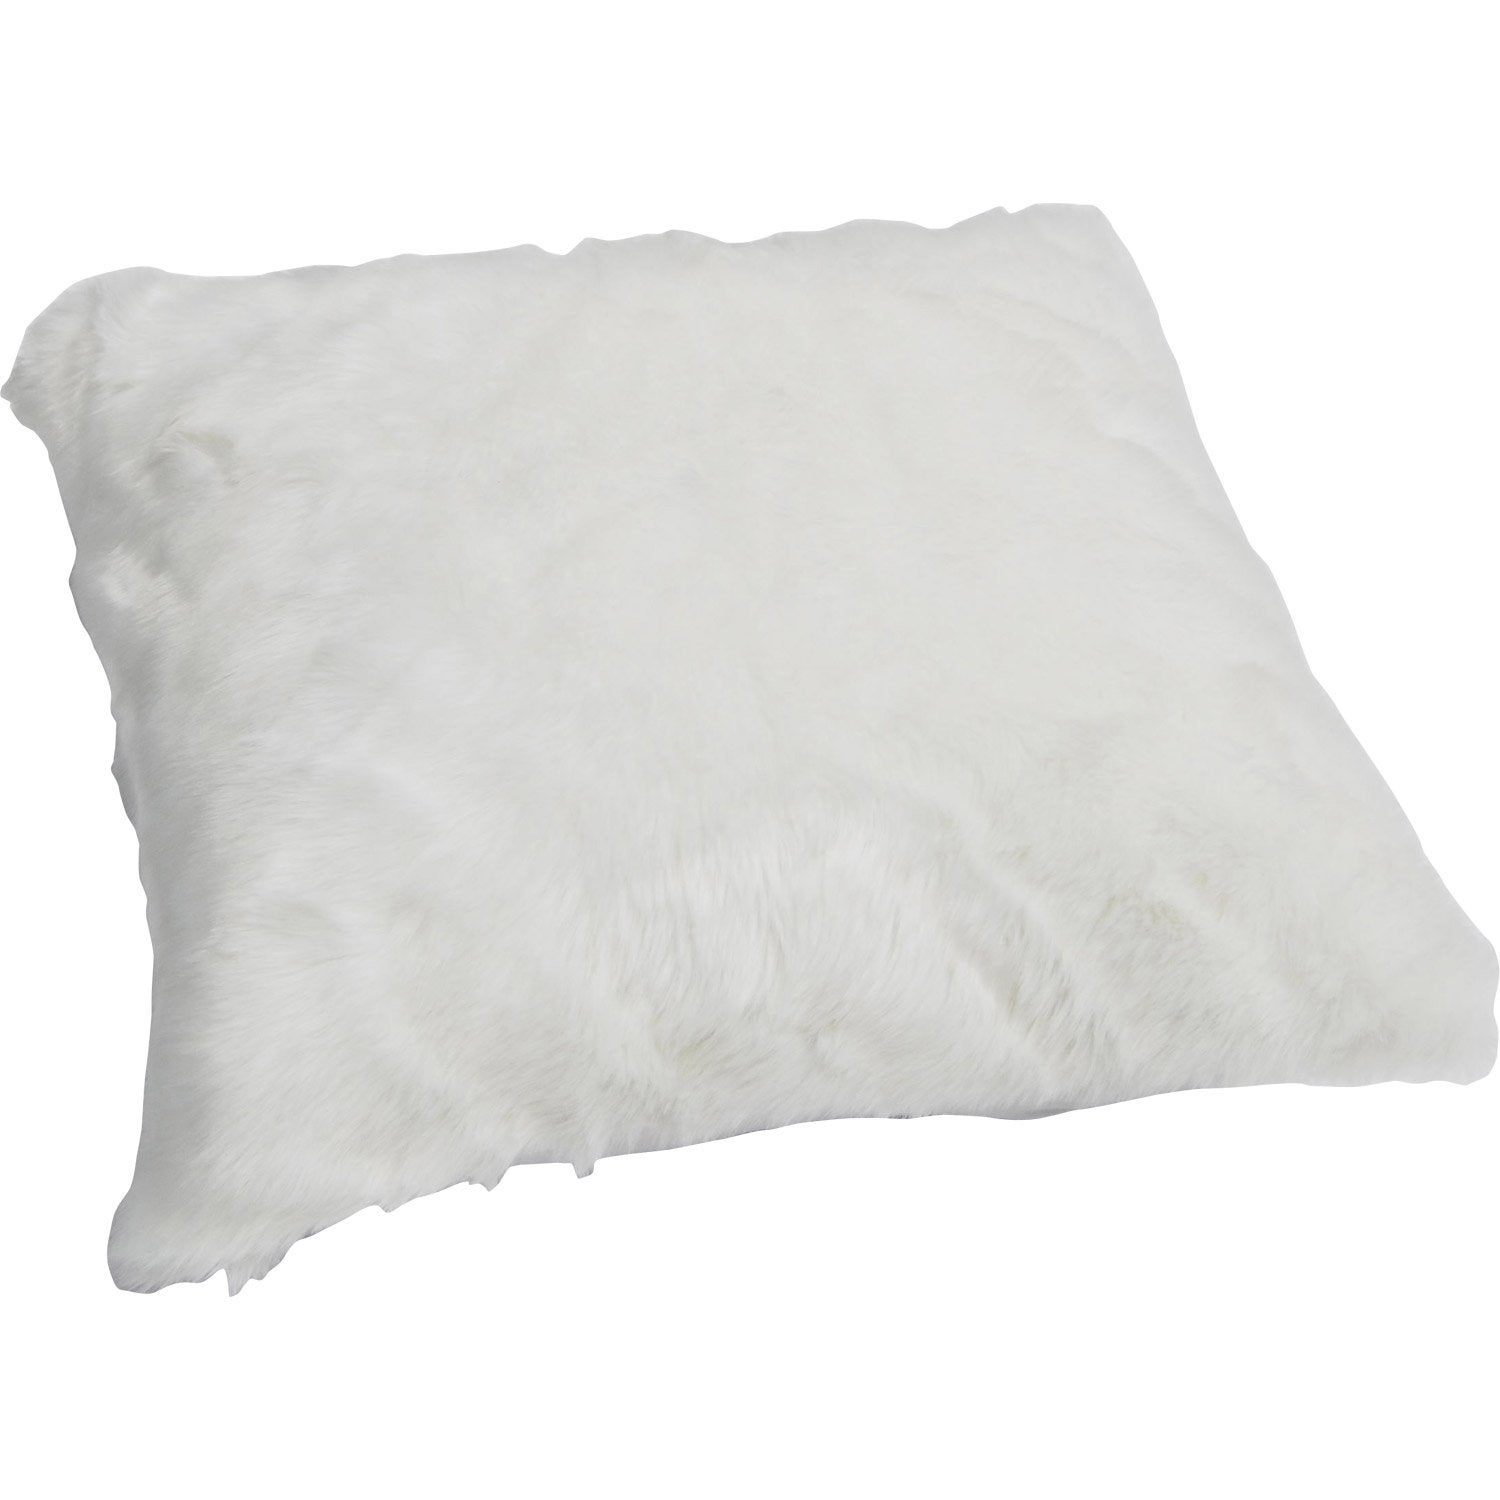 Coussin fausse fourrure lapin blanc x cm leroy merlin - Coussin leroy merlin ...